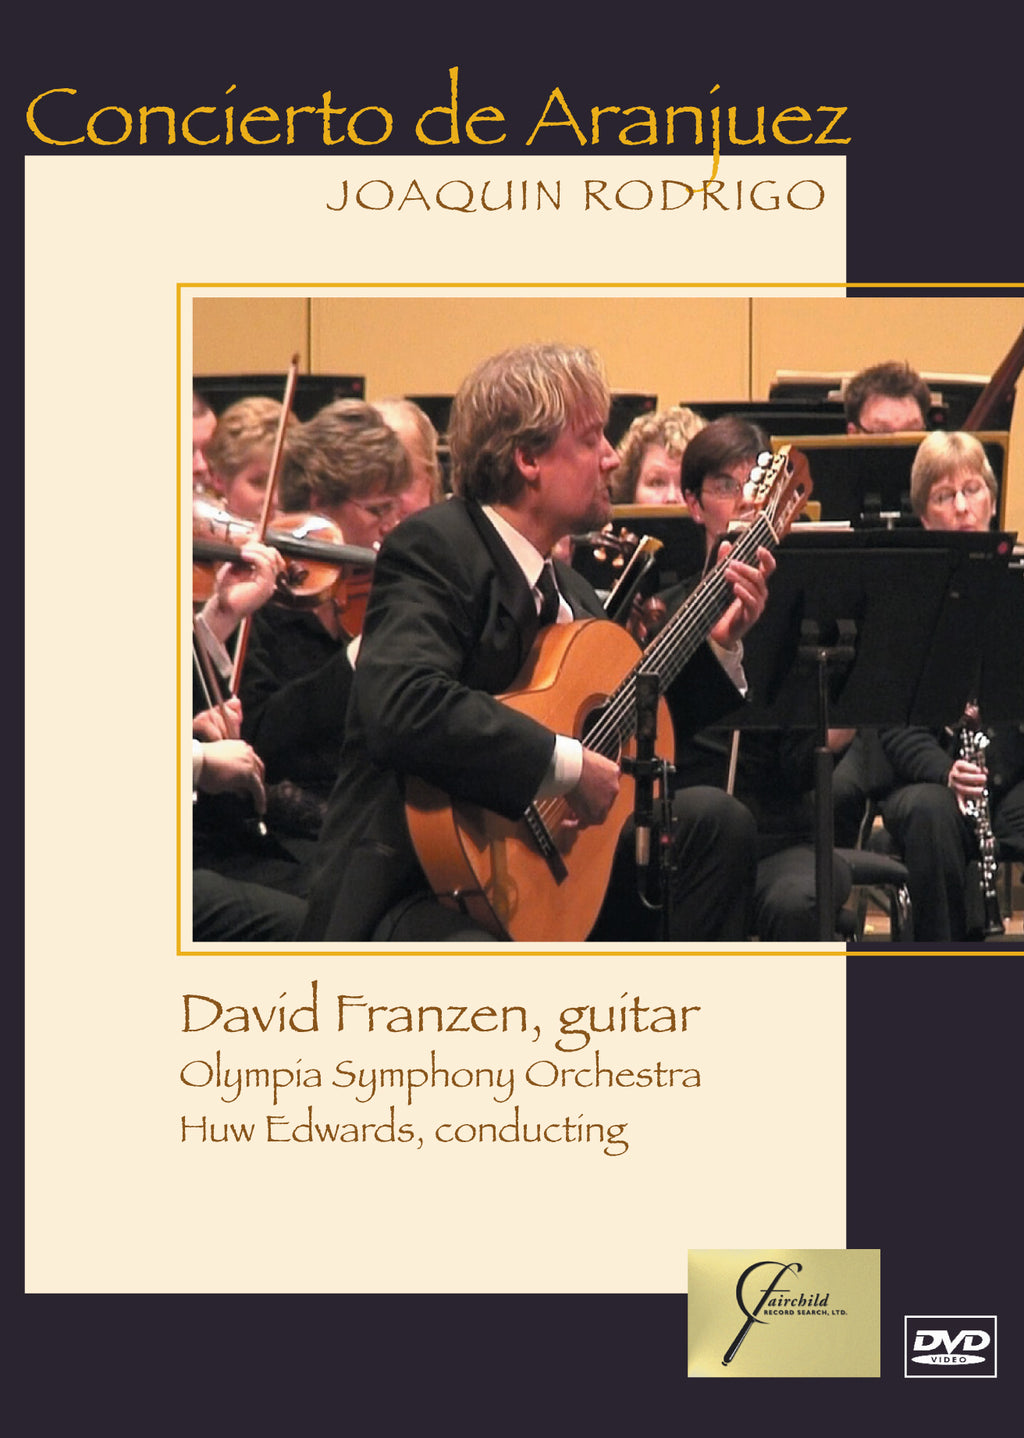 Concierto de Aranjuez - David Franzen and the Olympia Symphony Orchestra